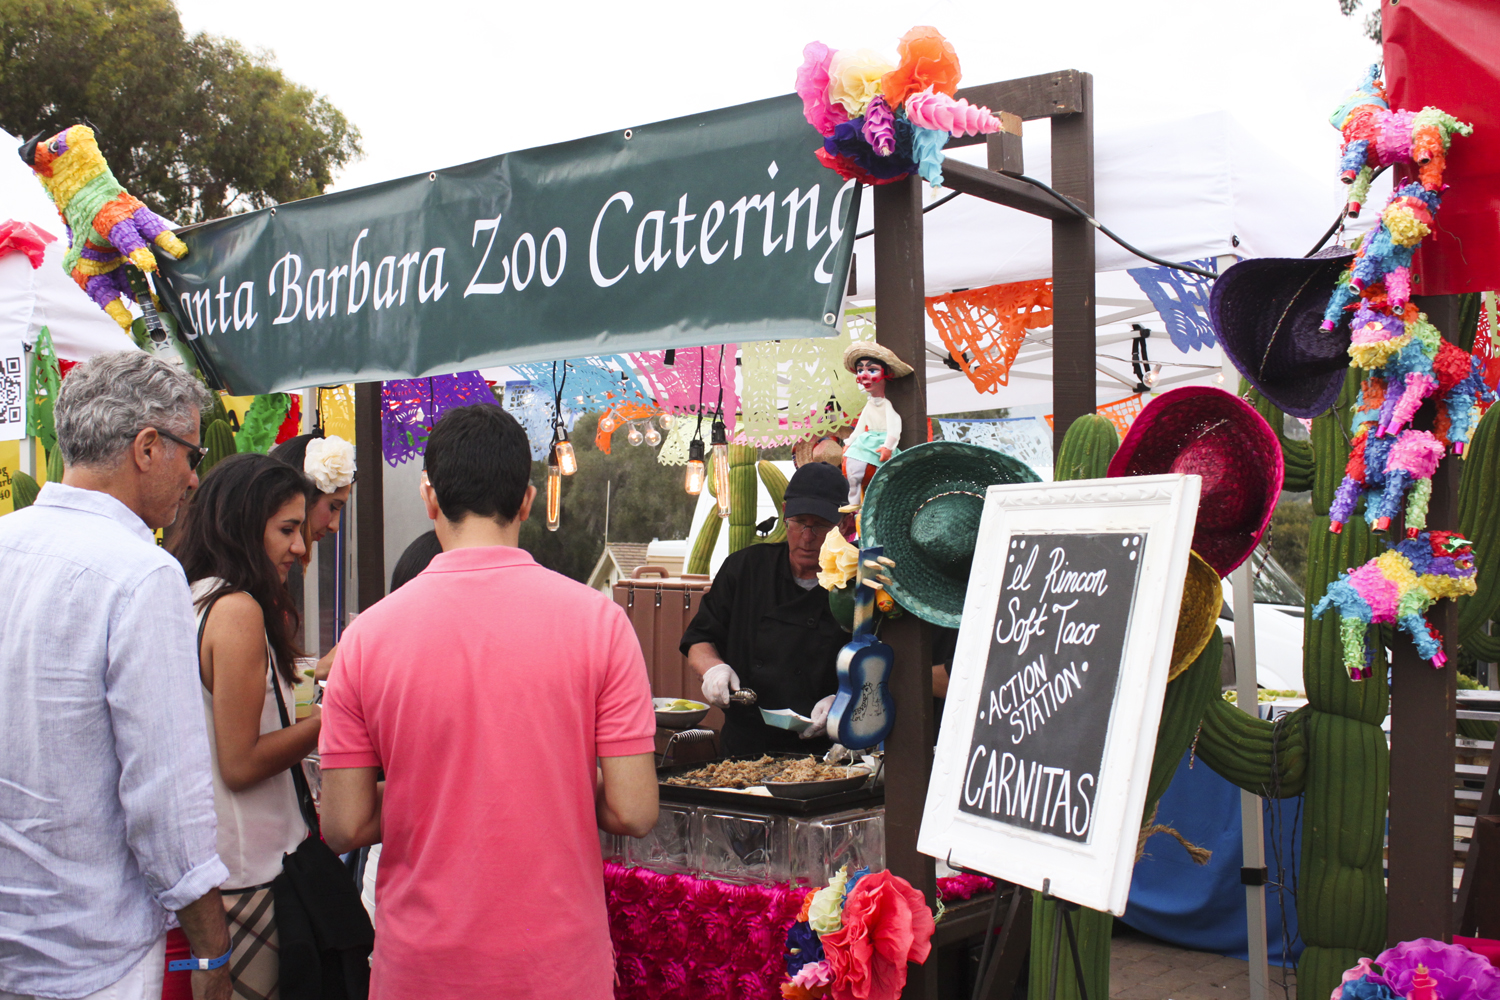 Santa barbara zoo camp coupon code